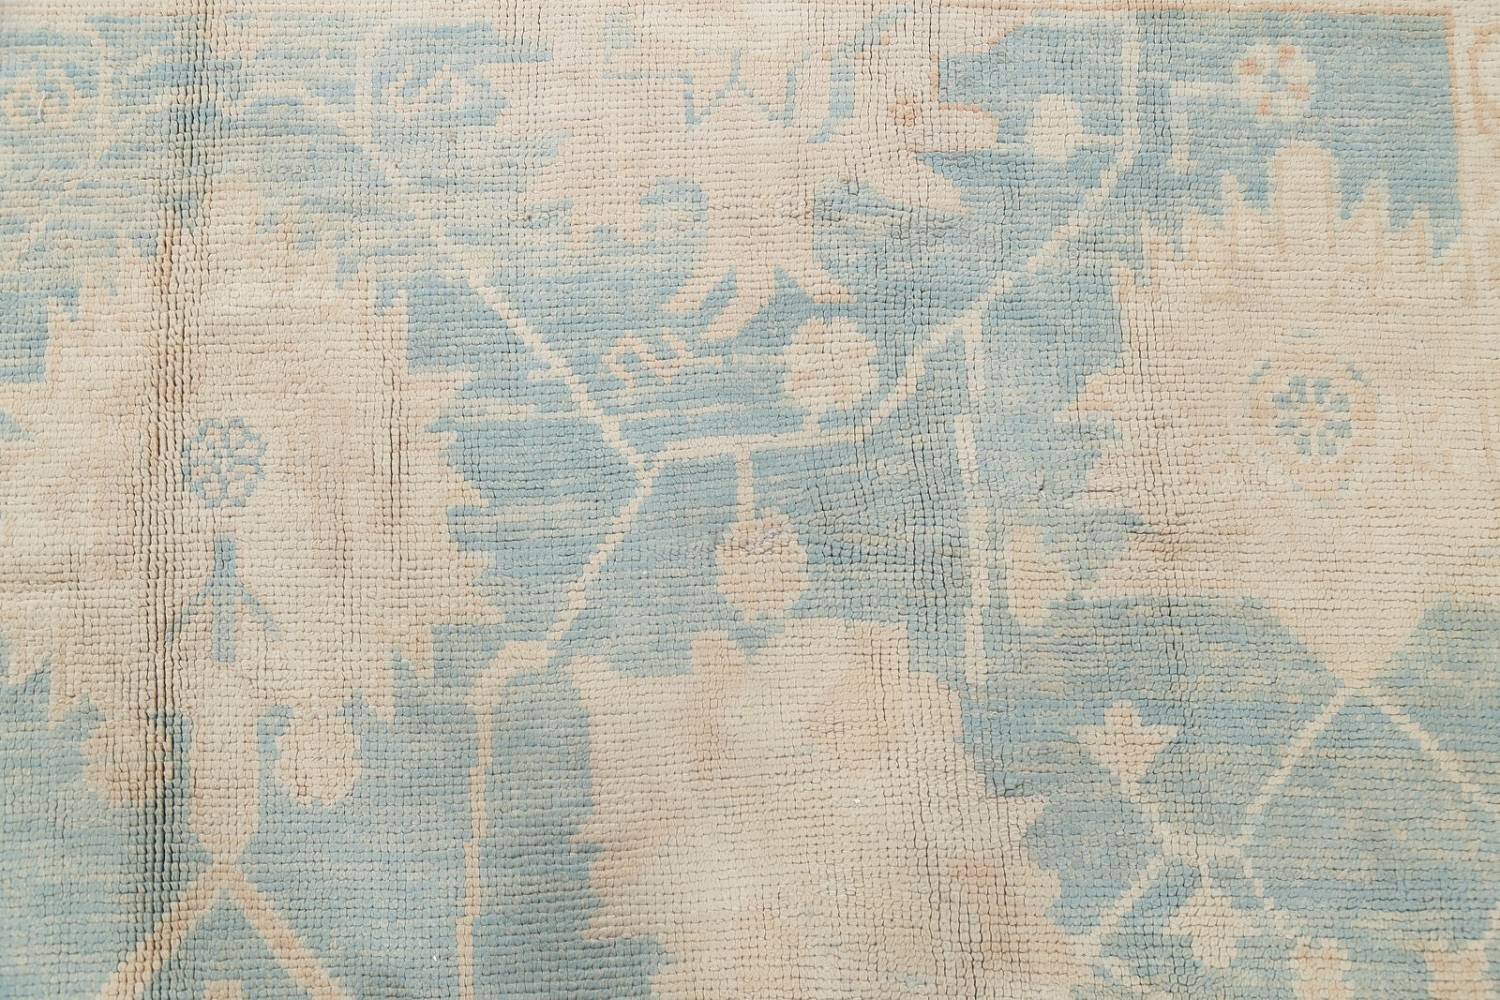 Vegetable Dye Muted Blue Oushak Turkish Hand-Knotted Area Rug 10x14 image 11